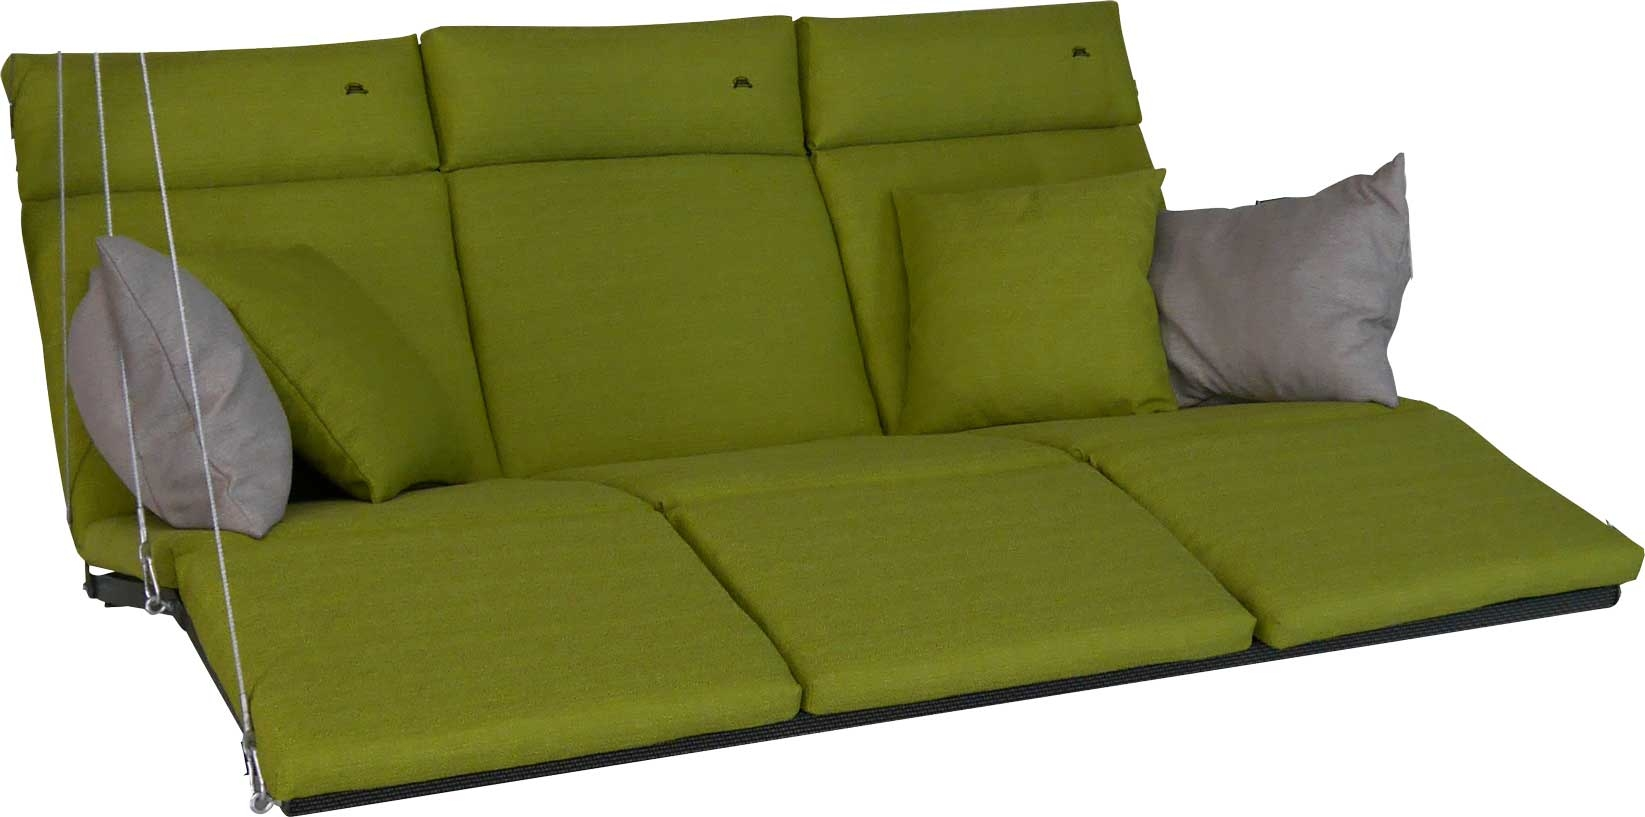 Angerer Hollywoodschaukel Auflage Relax Smart lime